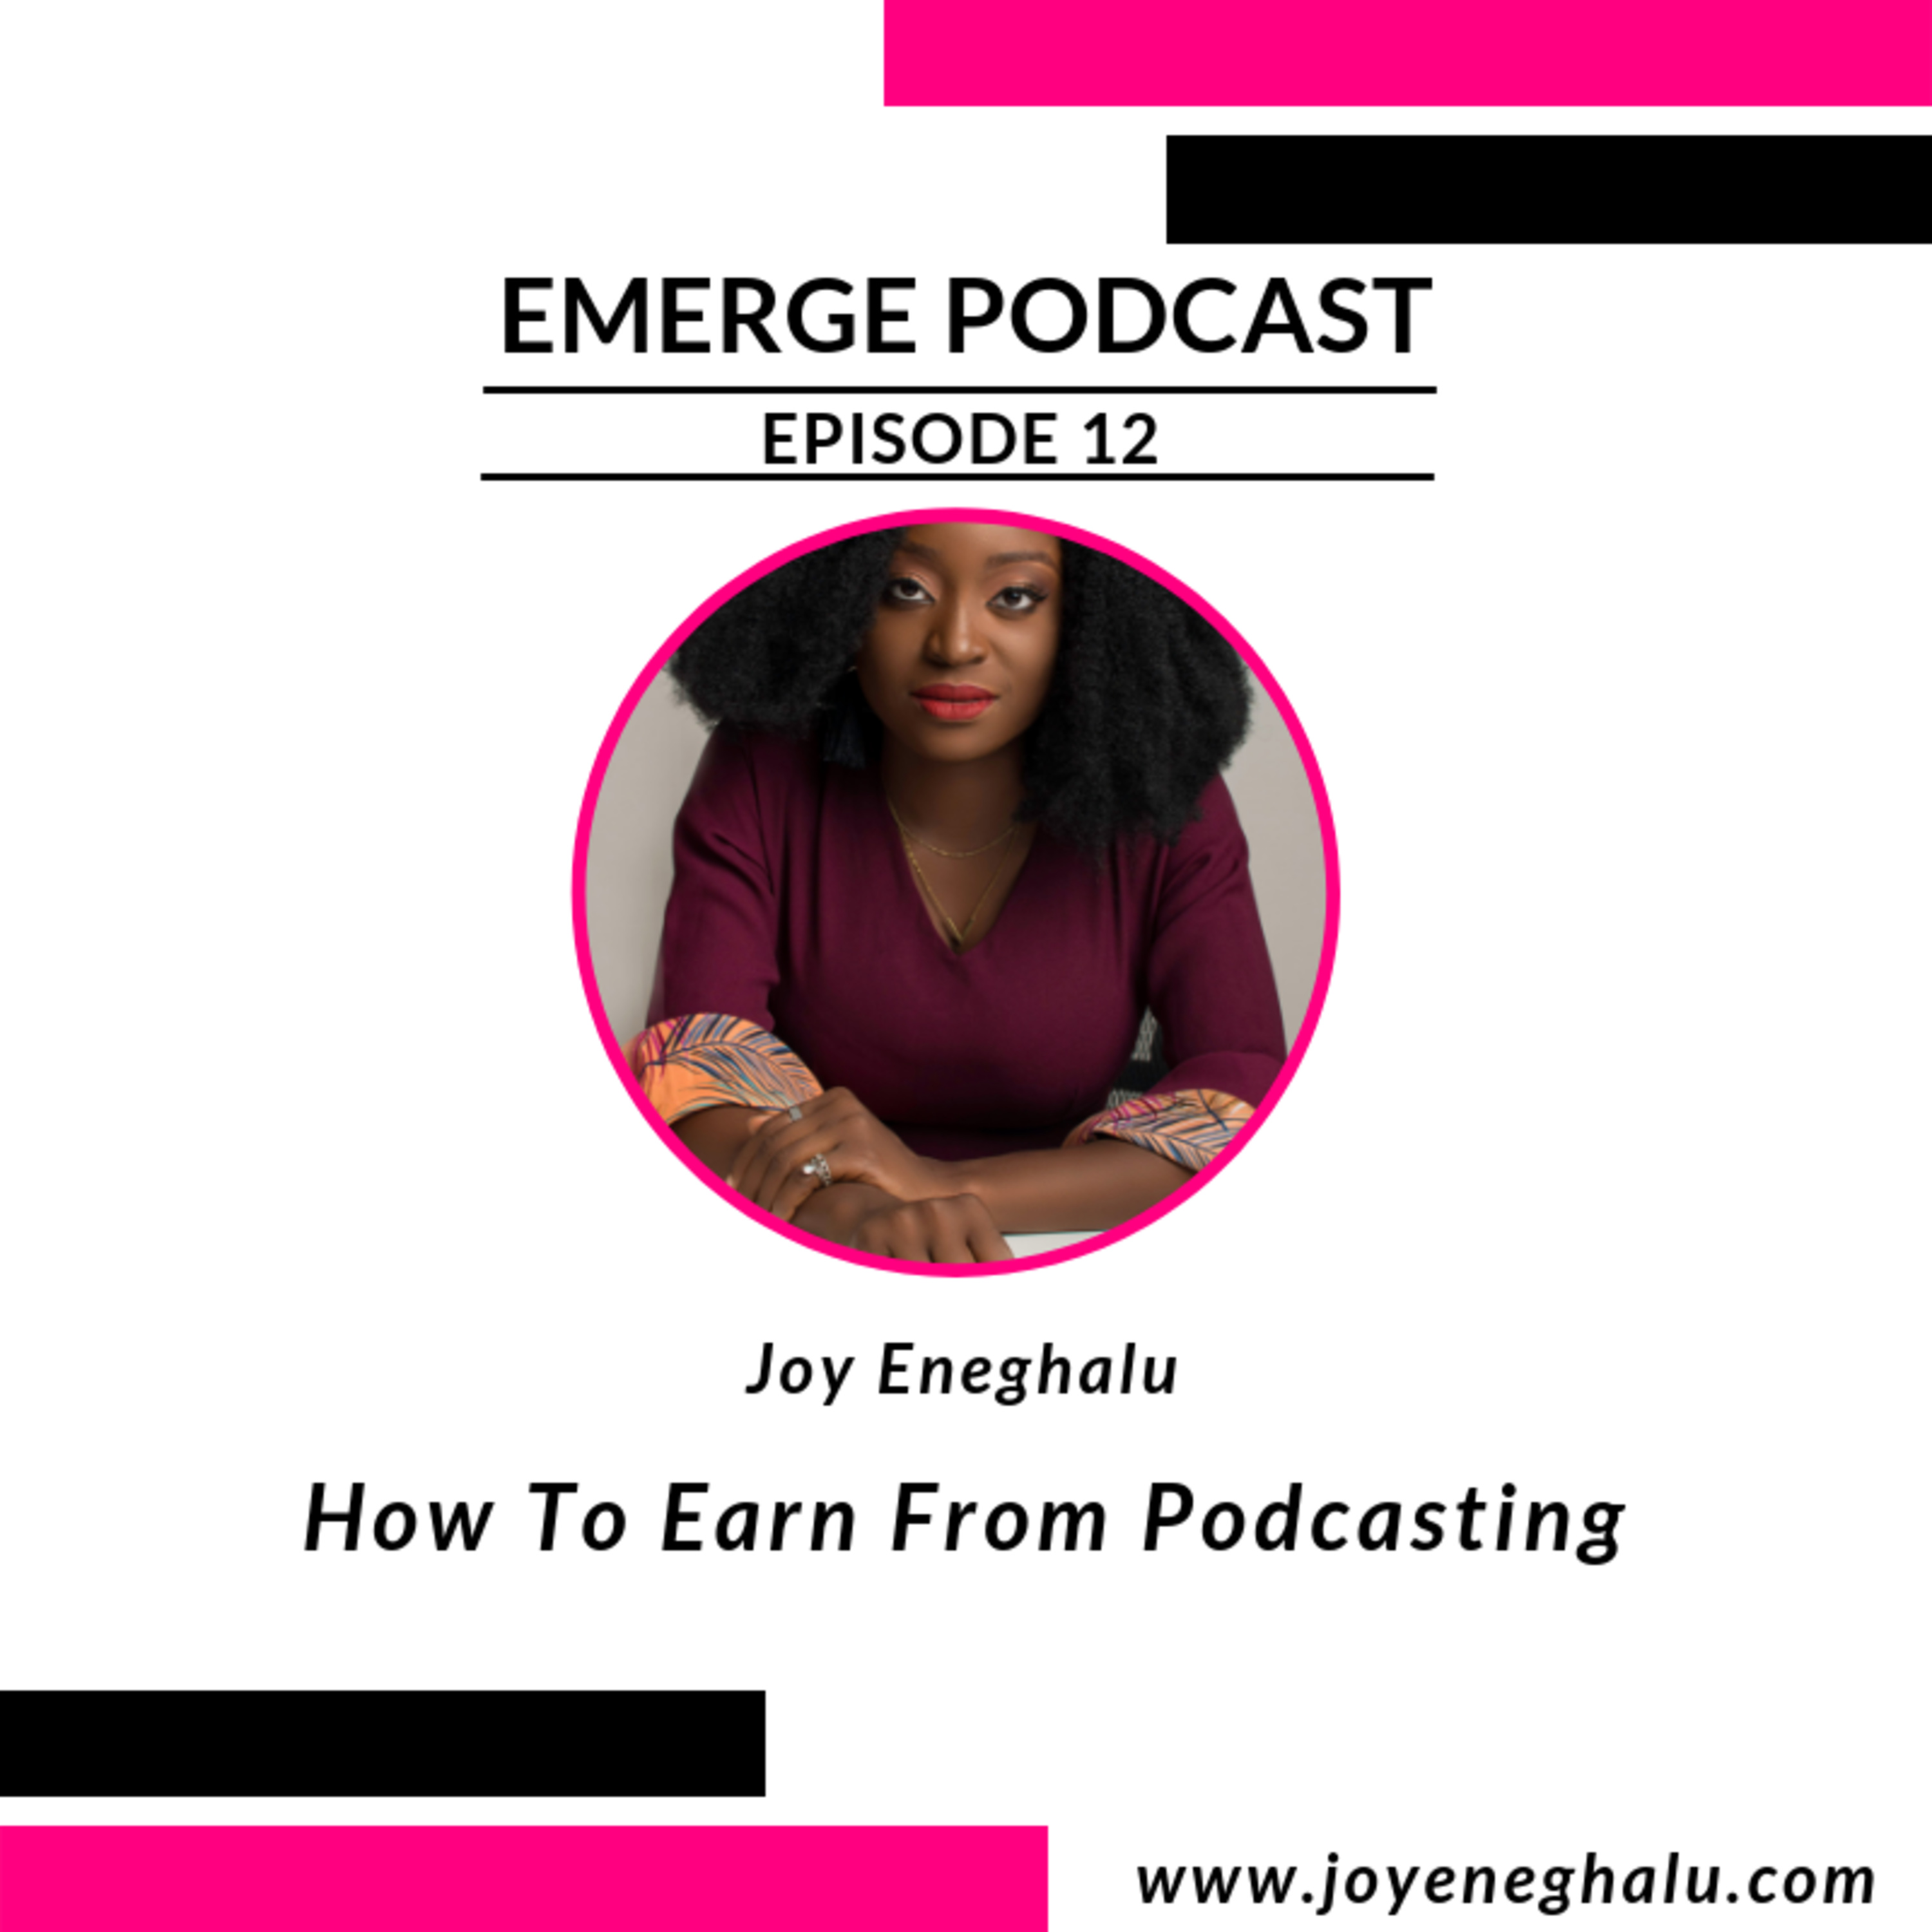 Episode 12 - How To Earn From Podcasting